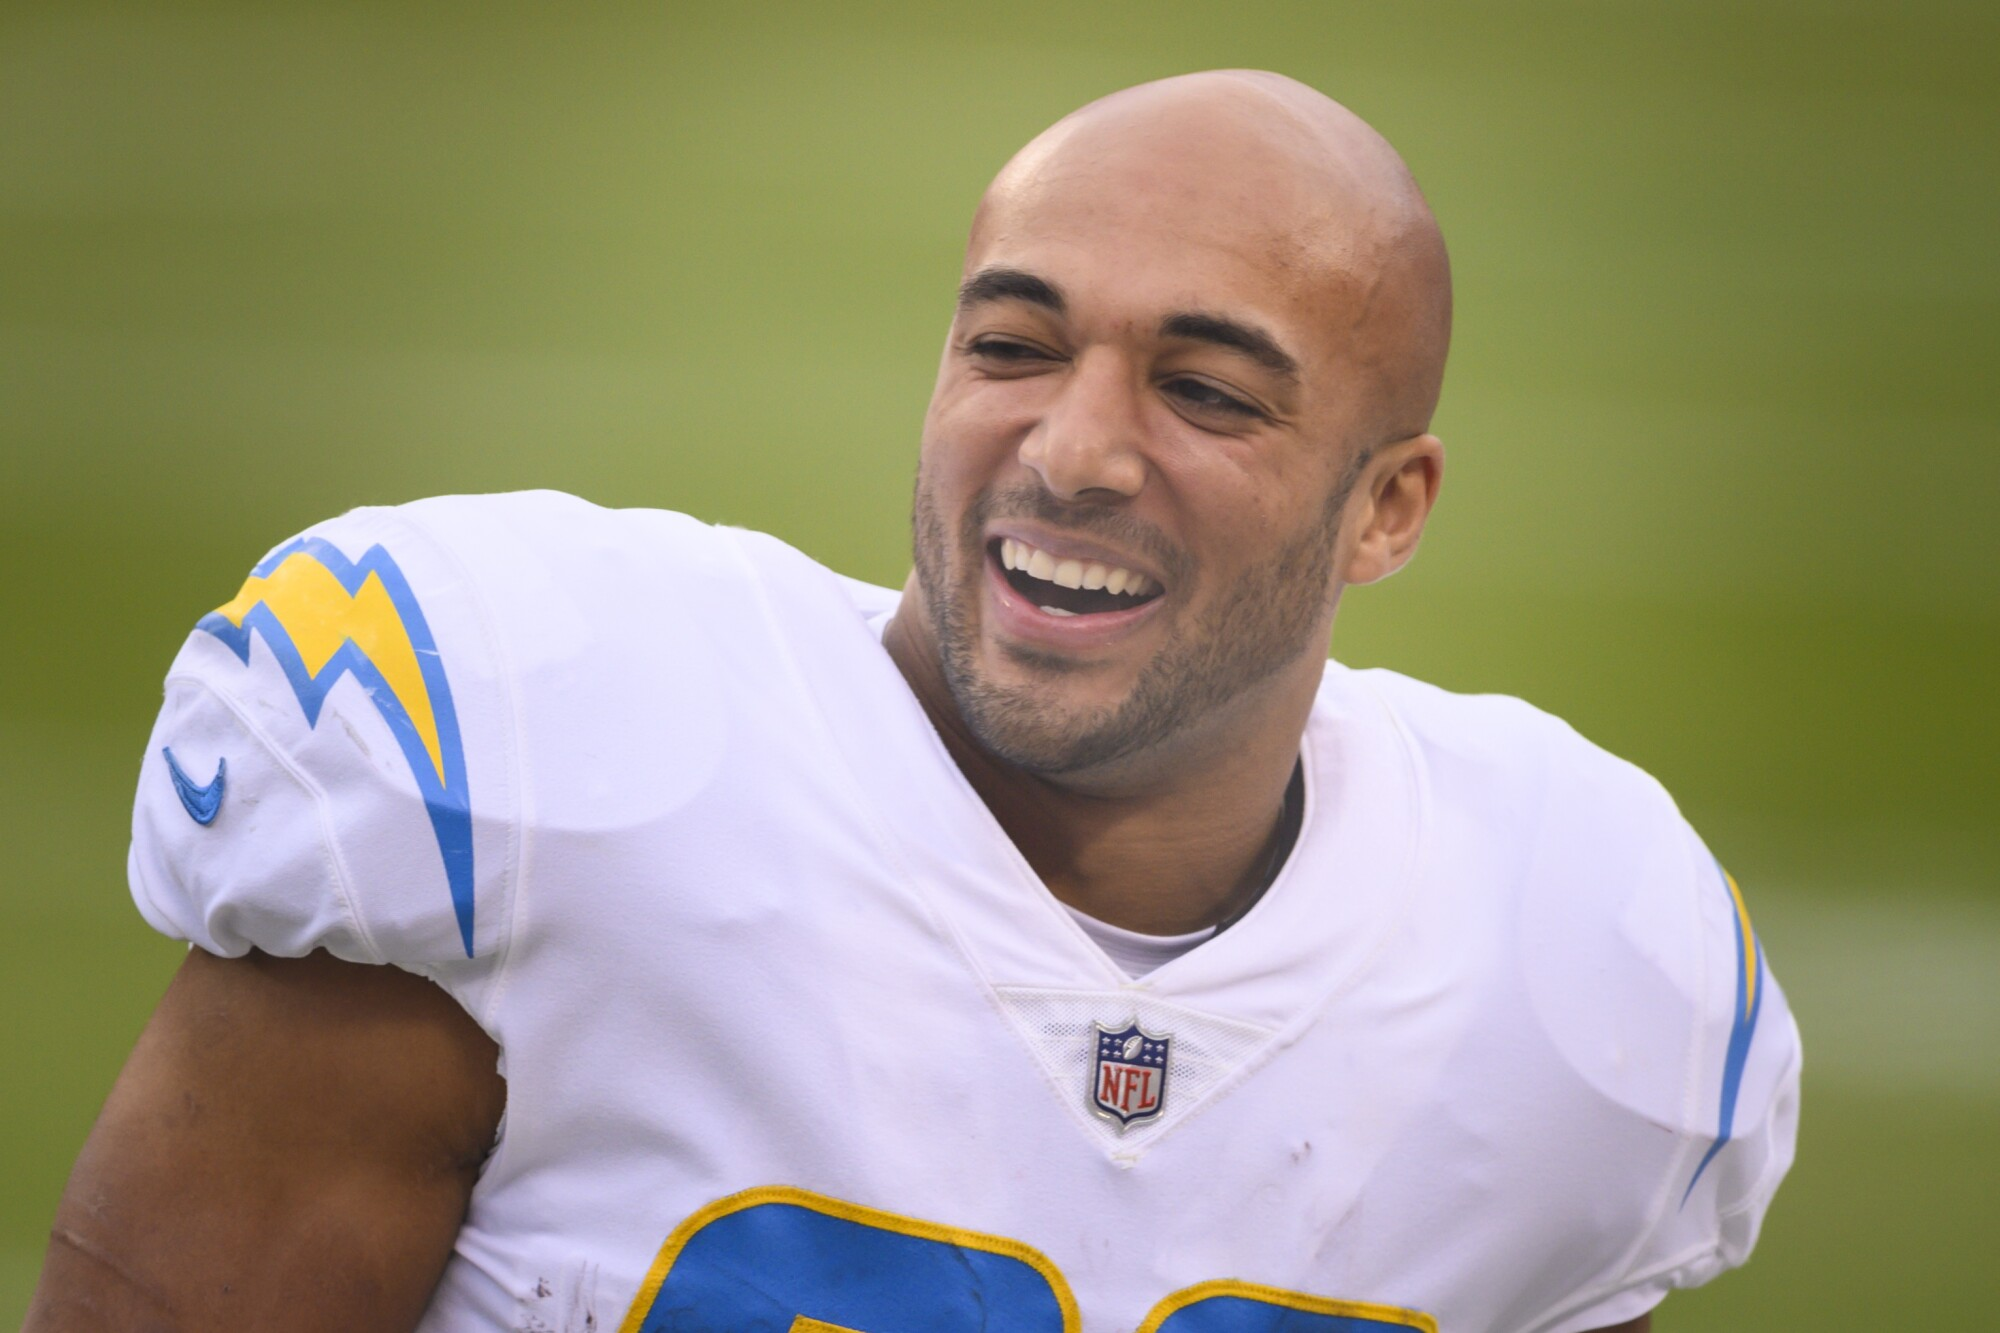 Chargers running back Austin Ekeler laughs on the sideline.